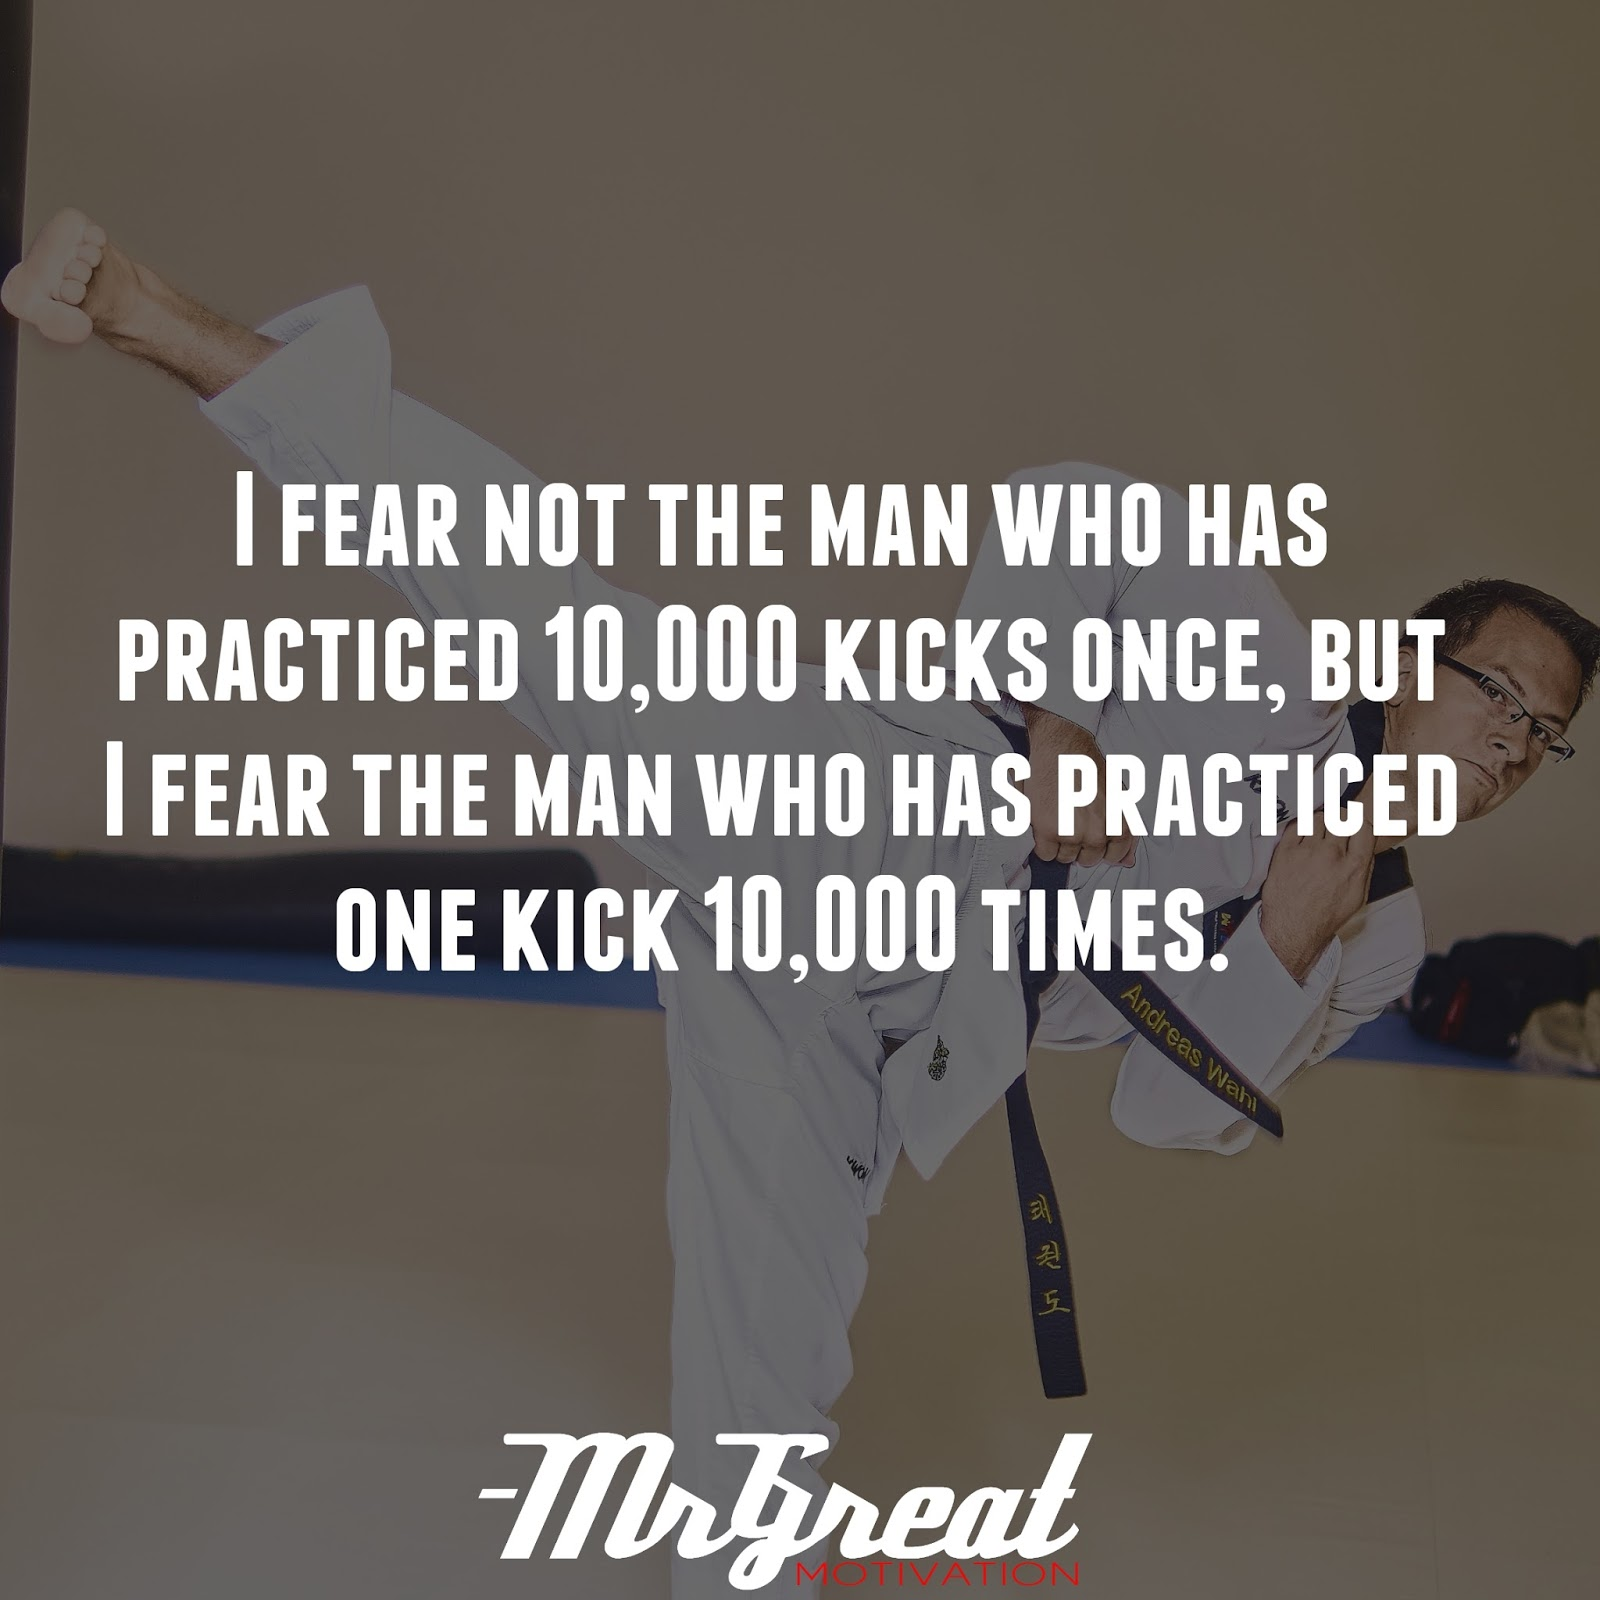 I fear not the man who has practiced 10,000 kicks once, but I fear the man who has practices one kick 10,000 times